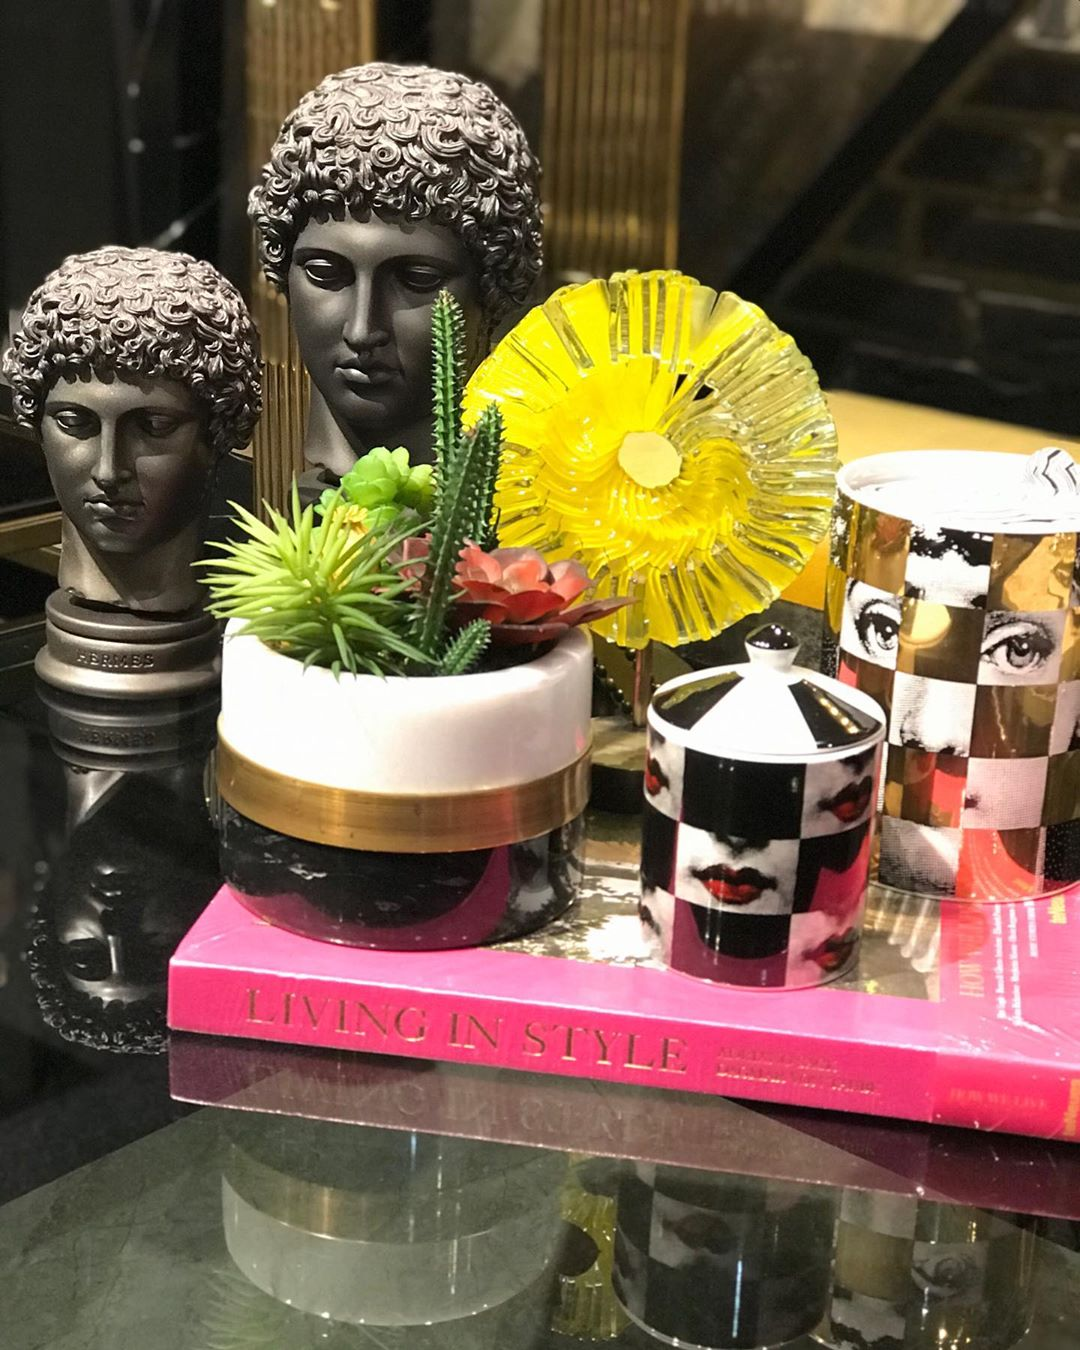 New Decor Trends for Home Designs and Ideas 2021 (88)